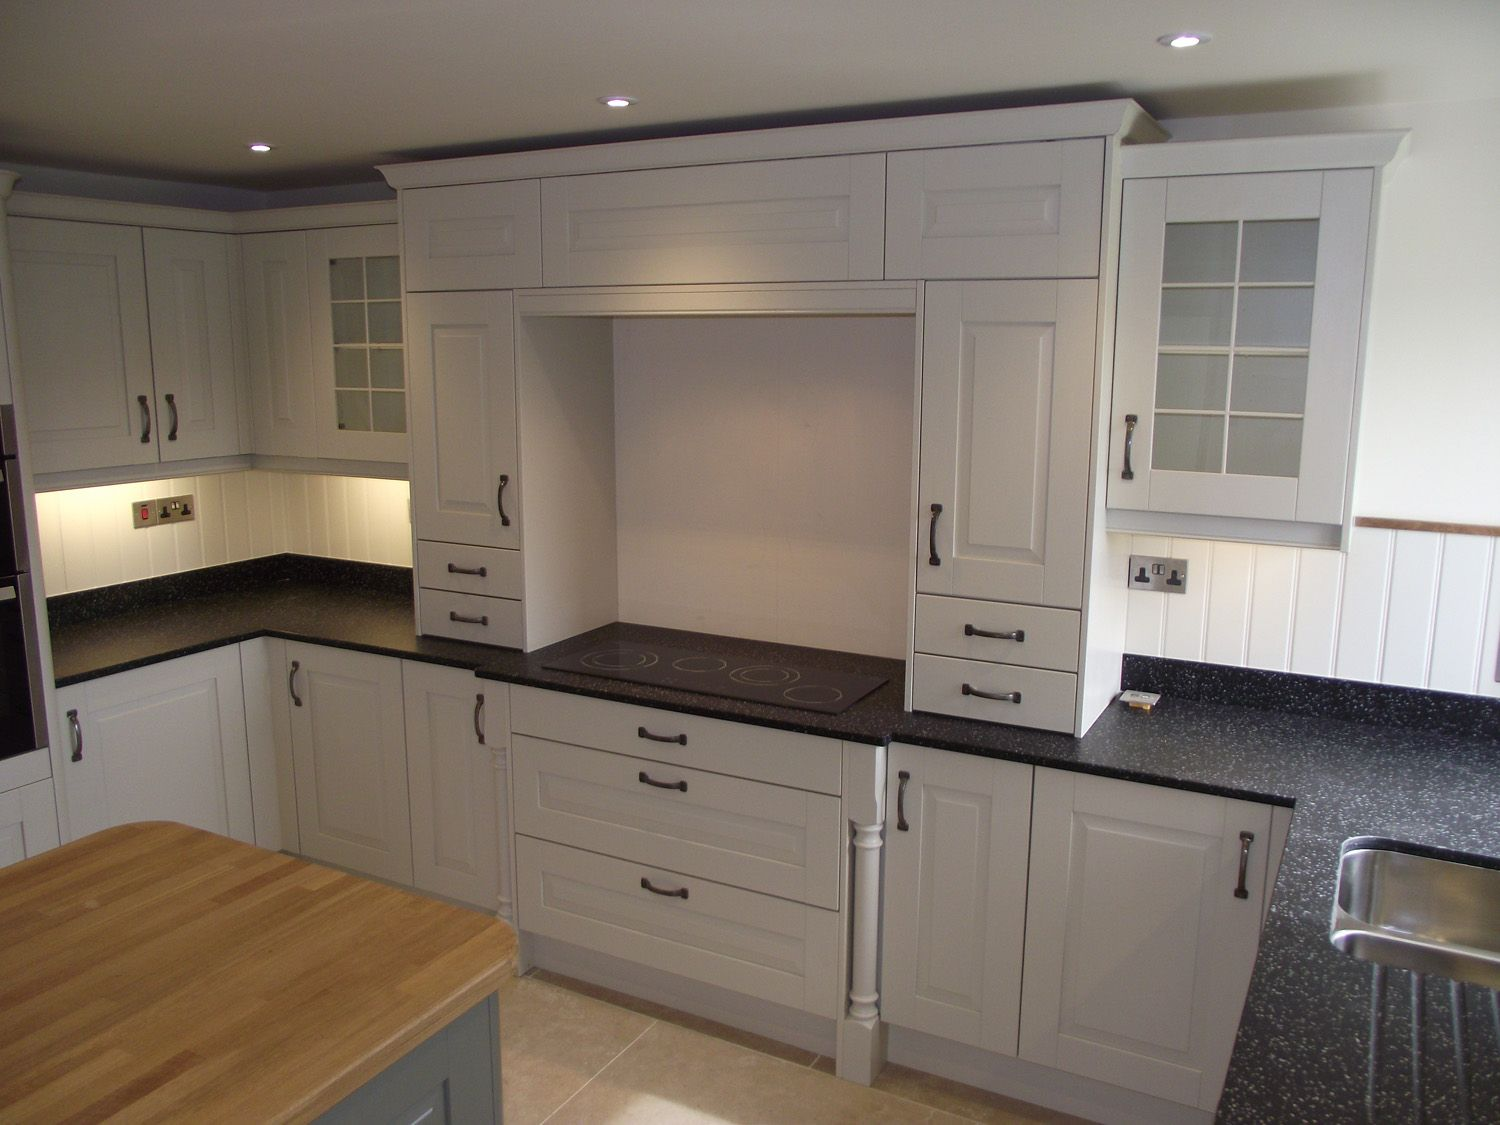 Cheap Kitchens Discount Kitchens For Sale Online Cheap Kitchen Cabinets Mr Seed Harrogate Kitchen Cheap Kitchen Cabinets Cheap Kitchen Units Kitchen Sale